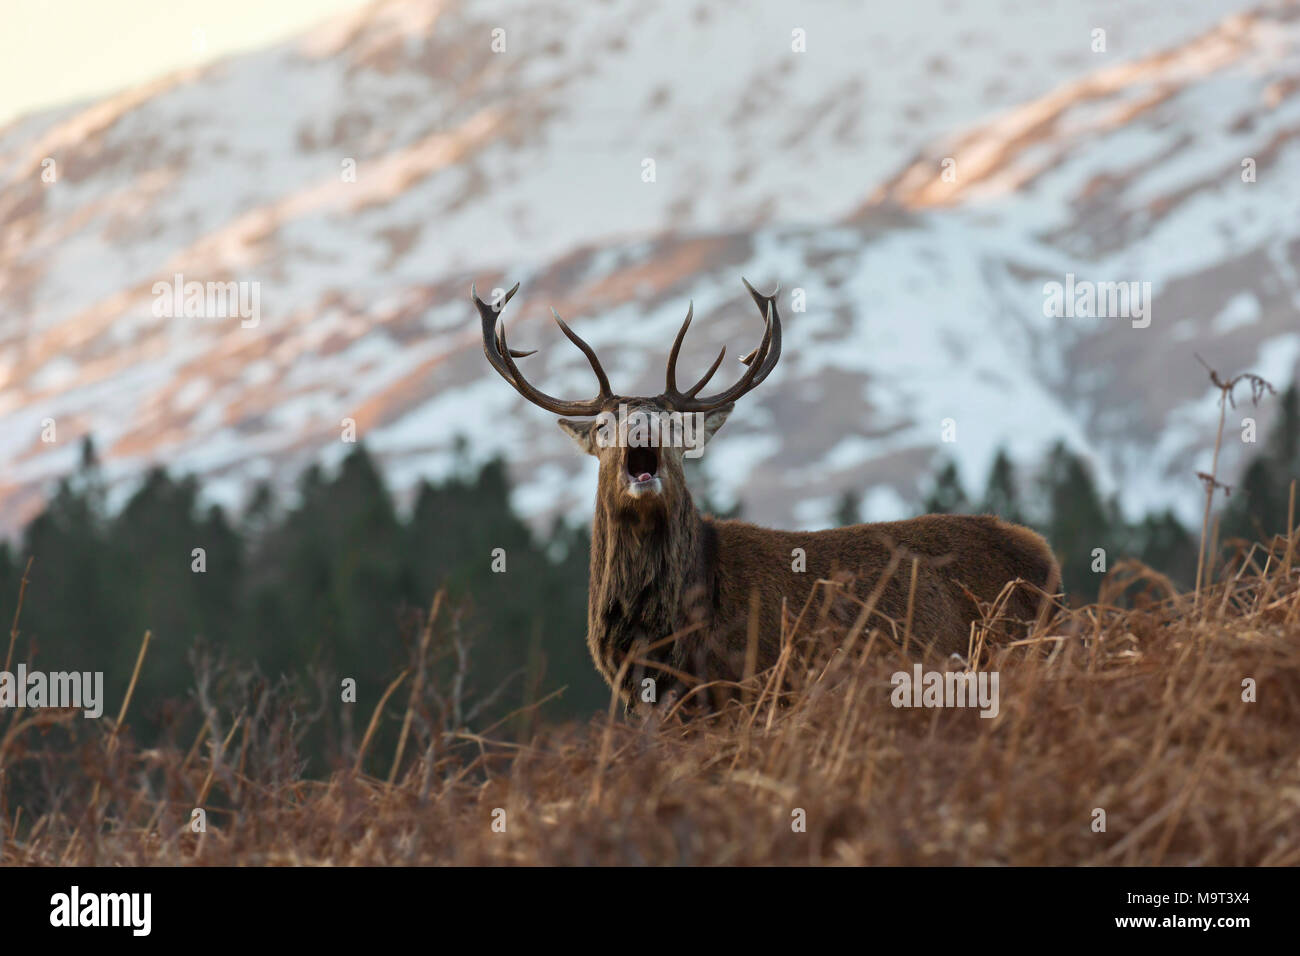 Red deer stag / male (Cervus elaphus) bellowing in the hills in winter in the Scottish Highlands, Scotland, UK - Stock Image